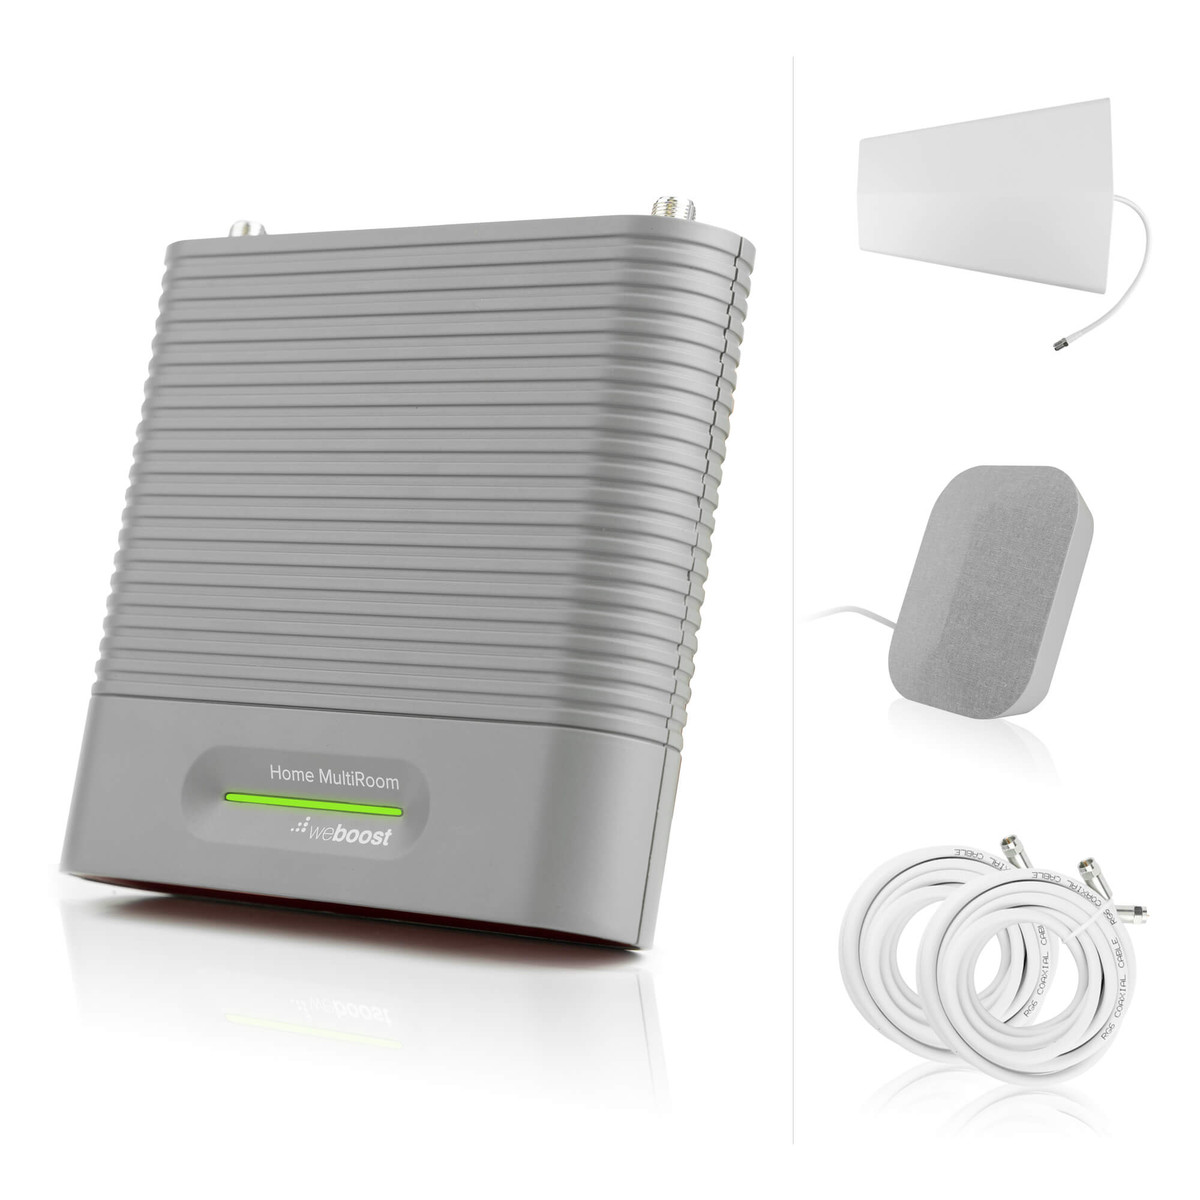 weBoost Home MultiRoom Cell Phone Signal Booster Kit